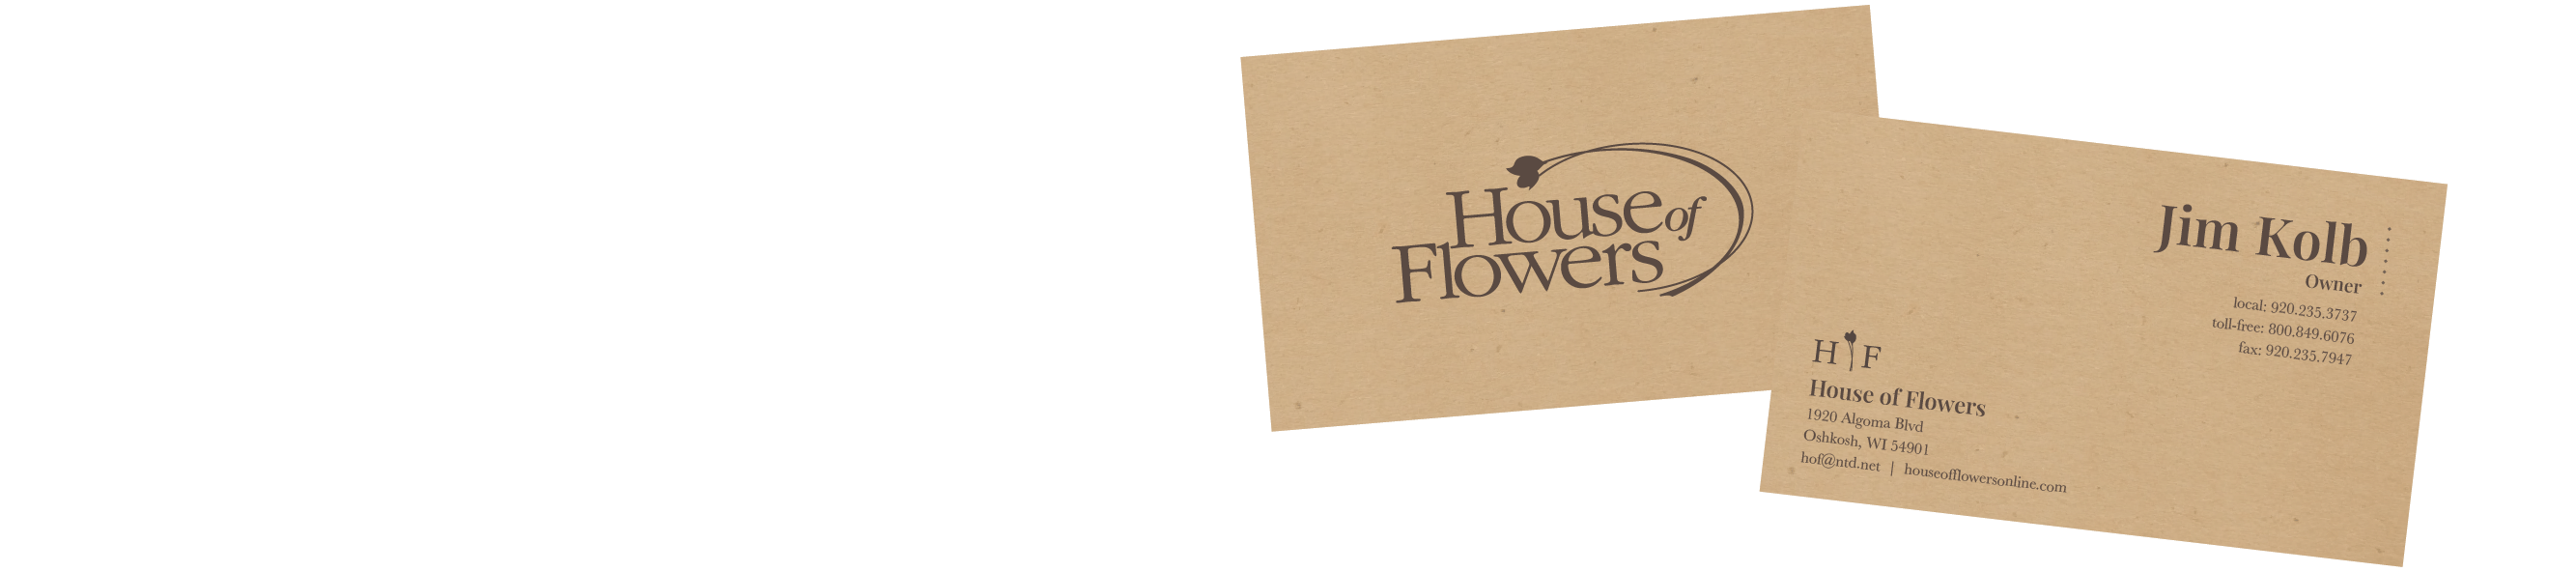 House of Flowers business cards.